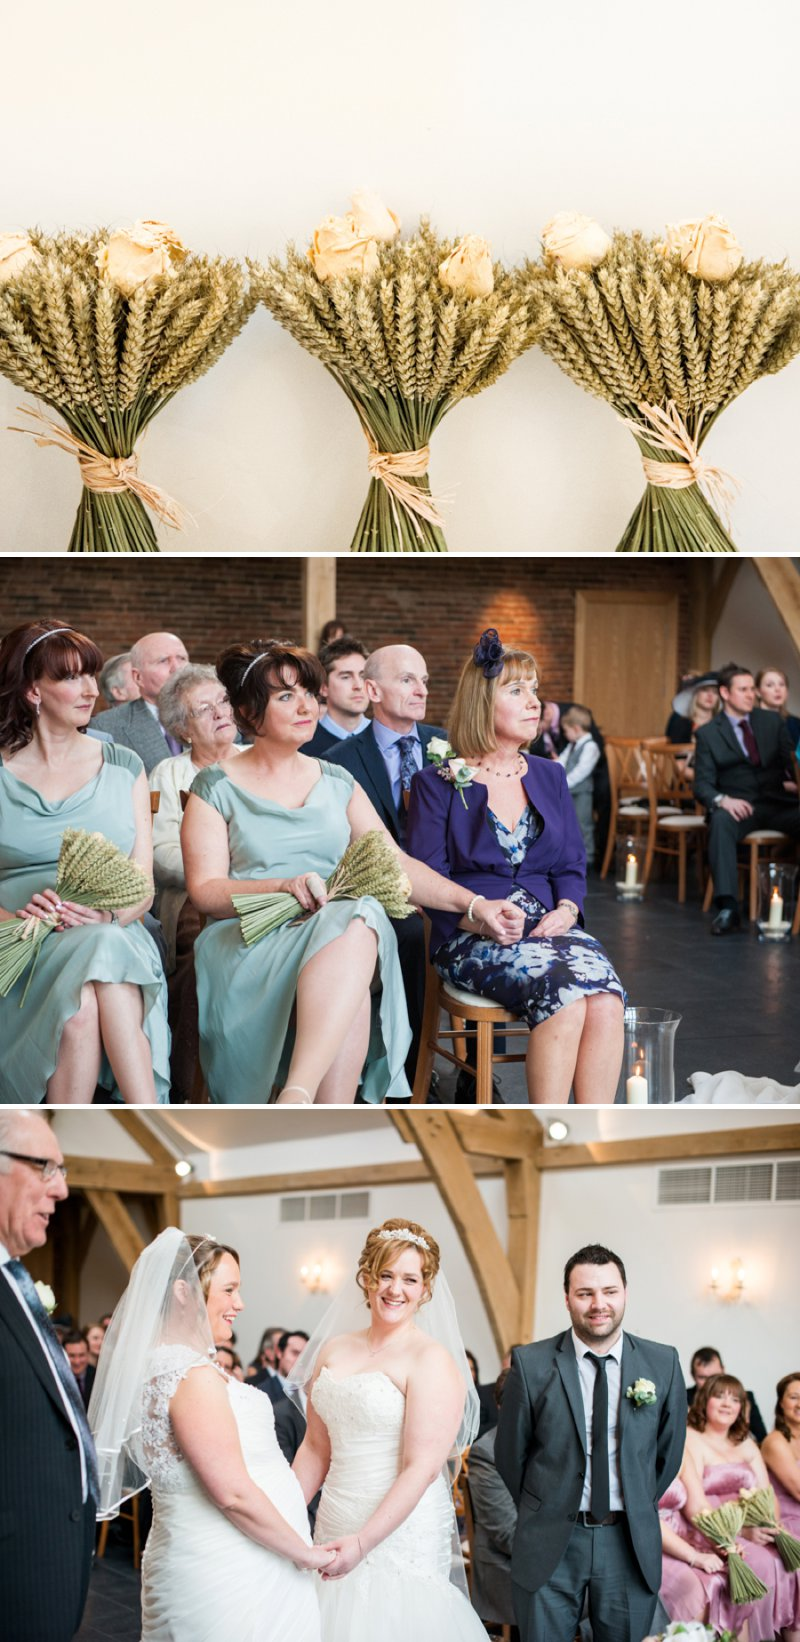 Rustic Same Sex Wedding At Mythe Barn With Brides In Traditional Ivory Gowns By Mori Lee And Donna Lee Designs With Bridesmaids In Dusky Pink And Sage Green 4